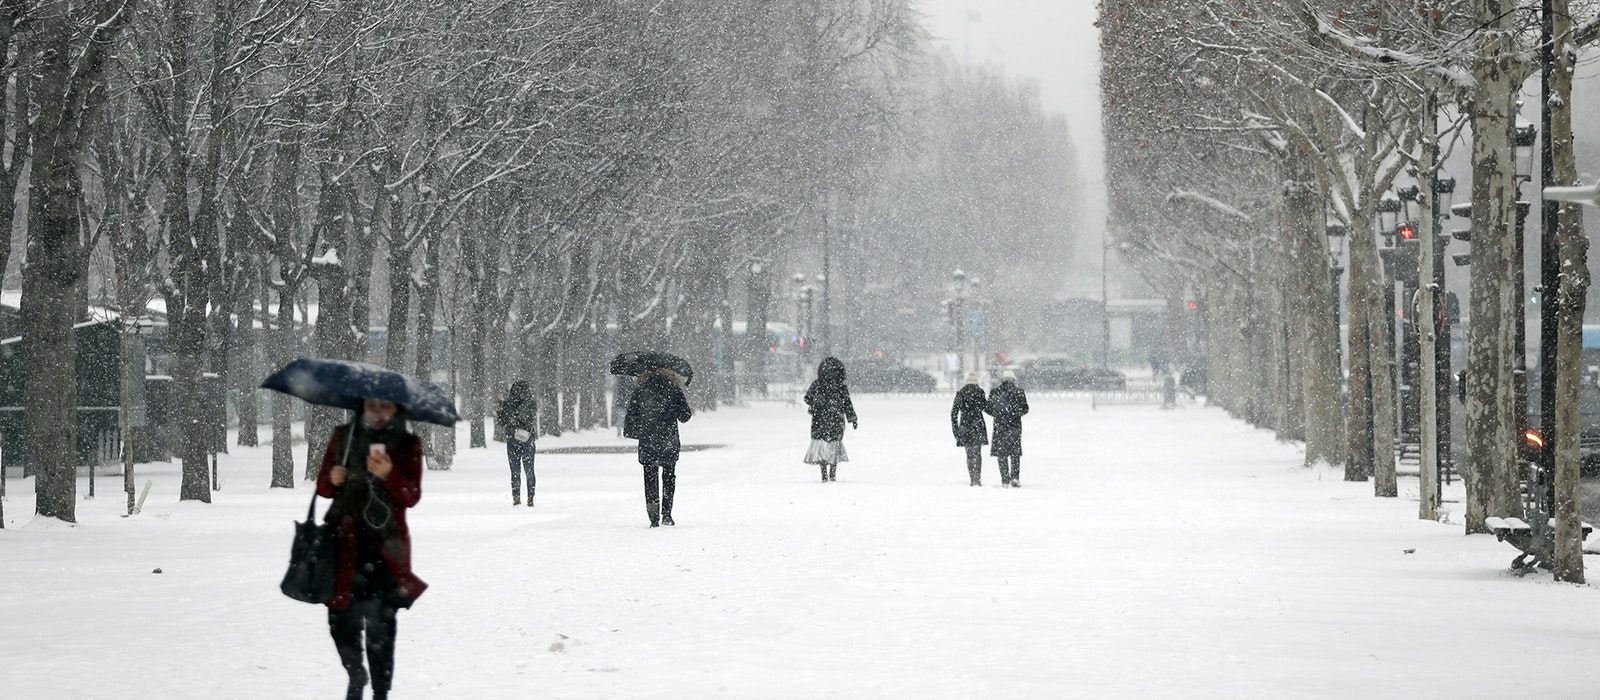 People stroll on the Champs-Elysées as it snows in Paris on January 22, 2019.